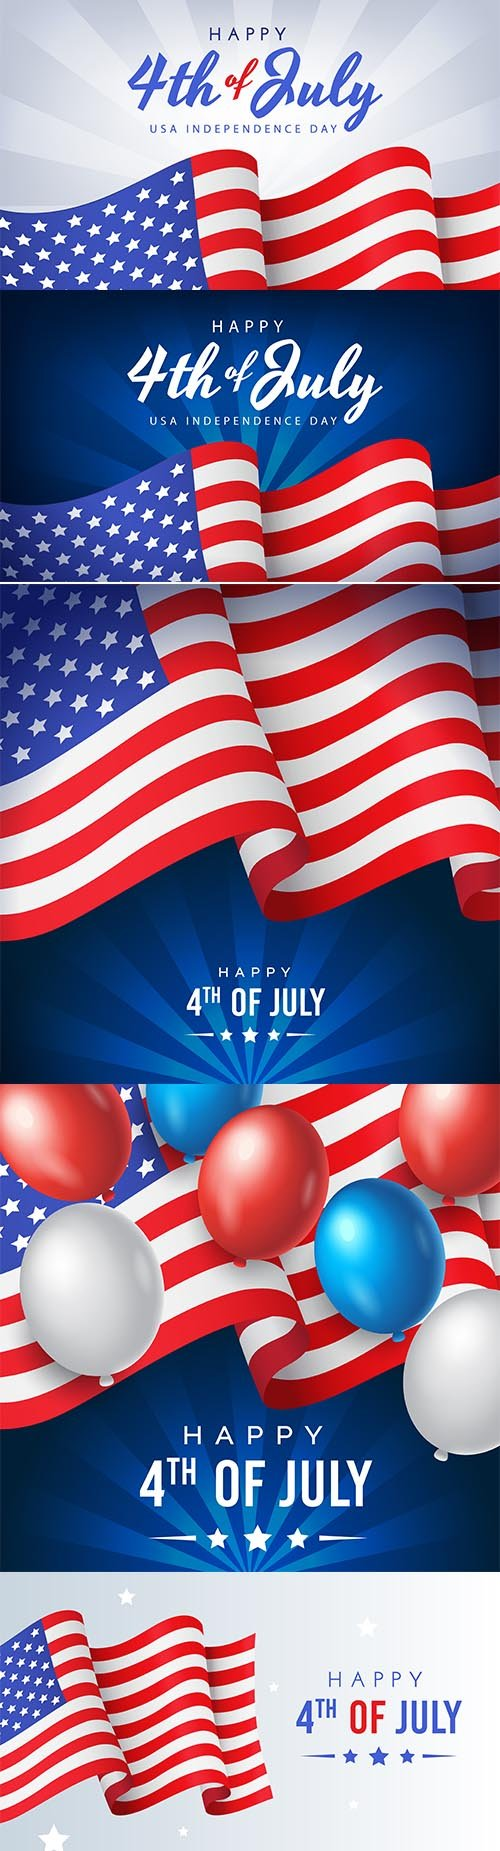 US Independence Day Background